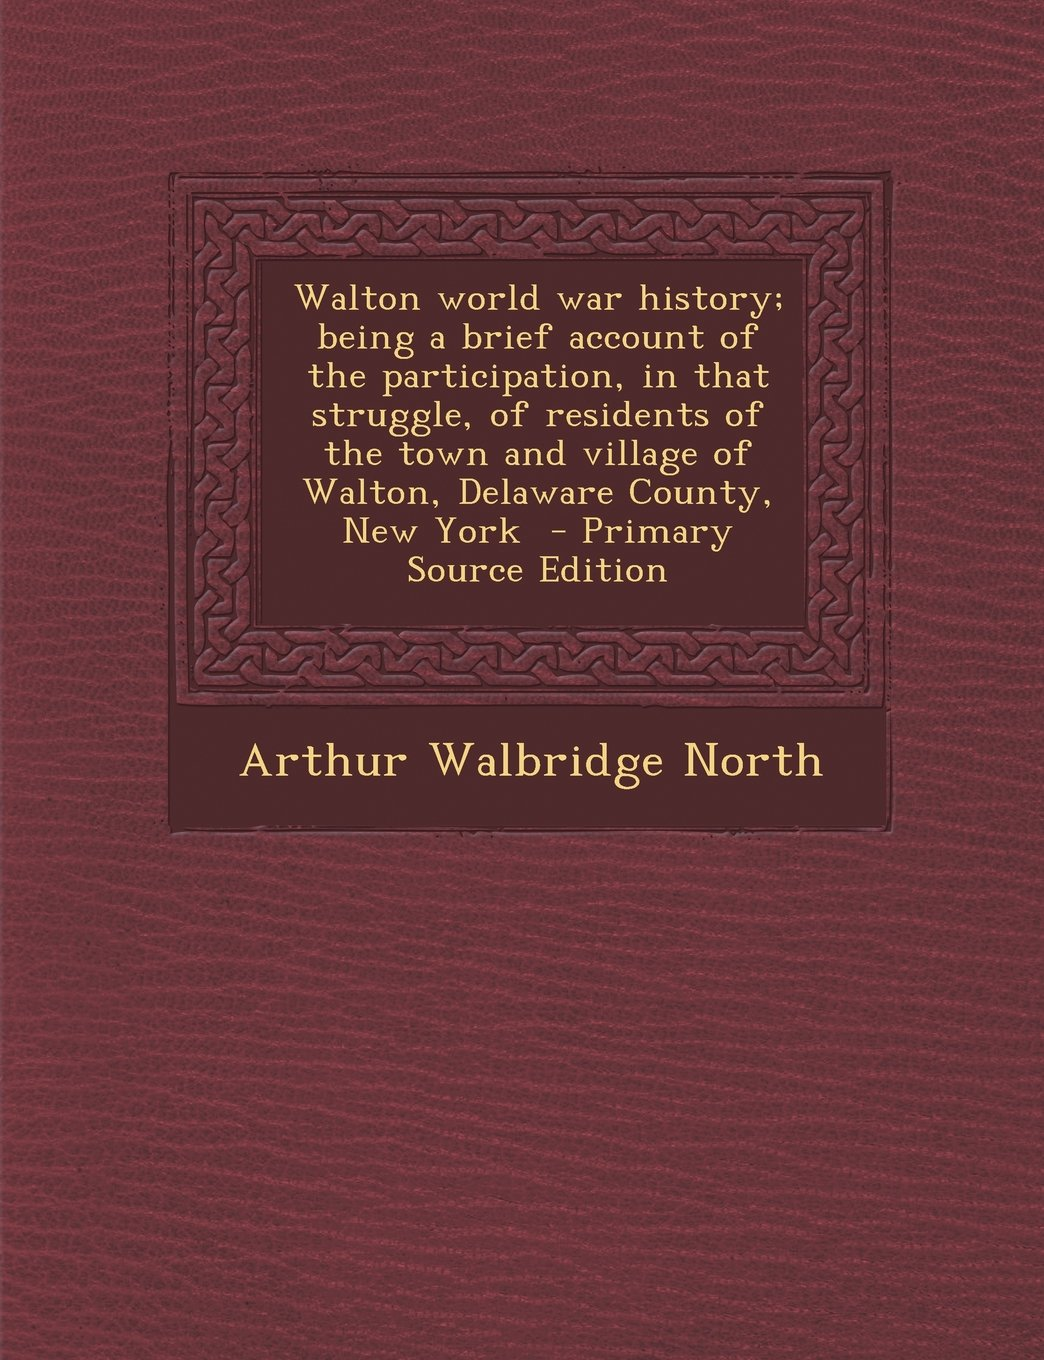 Download Walton world war history; being a brief account of the participation, in that struggle, of residents of the town and village of Walton, Delaware County, New York PDF